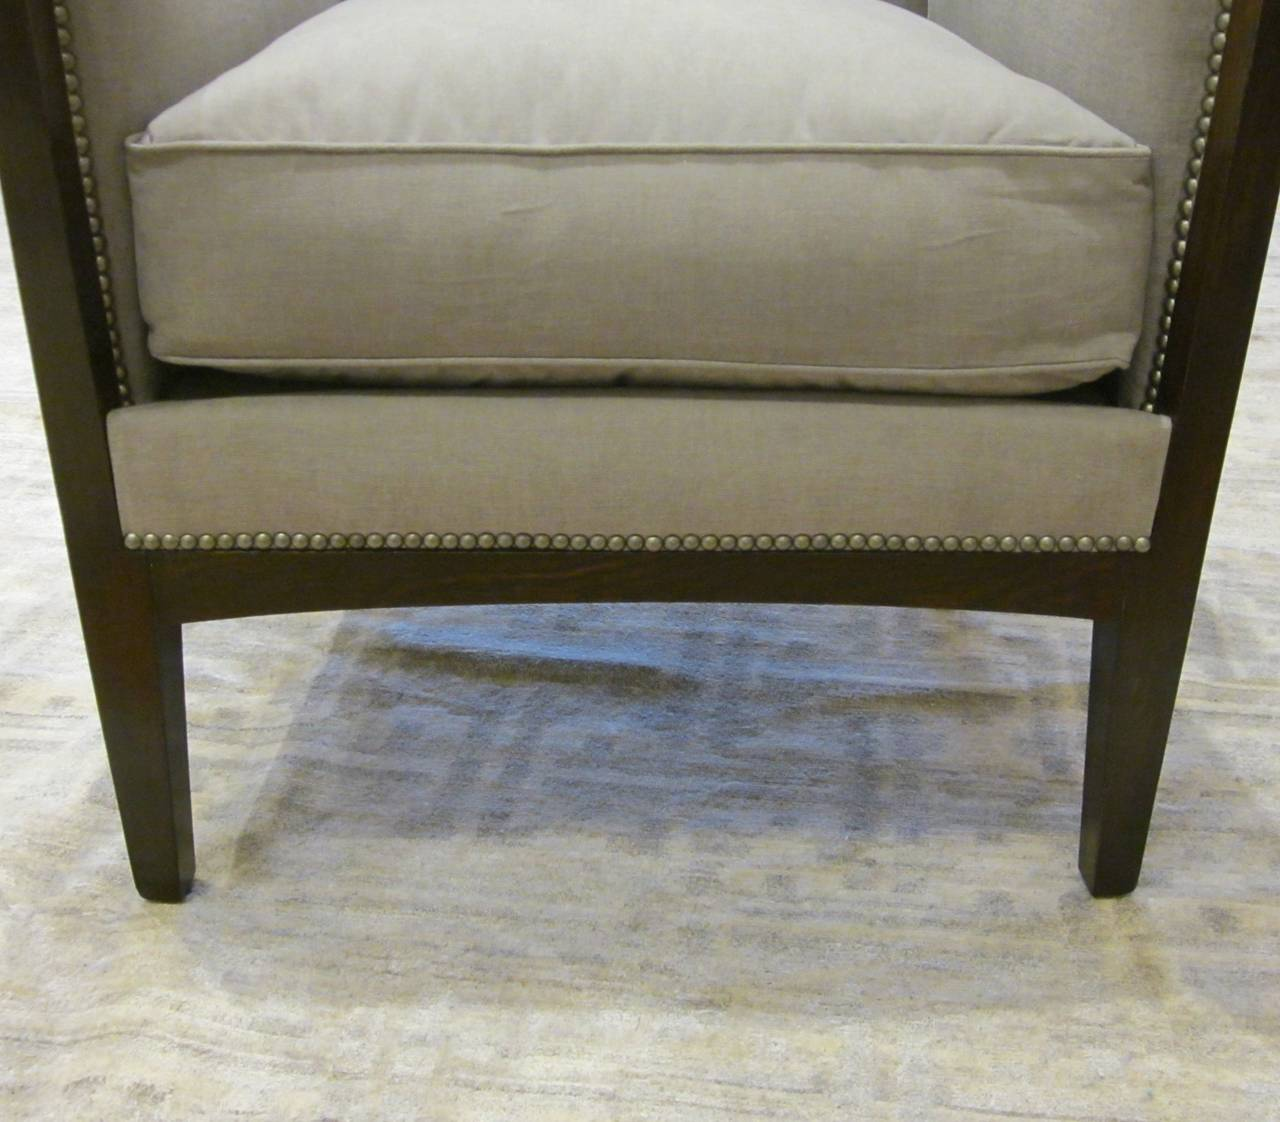 Upholstery Pair of French Upholstered Grey Club Chairs, 1940s For Sale